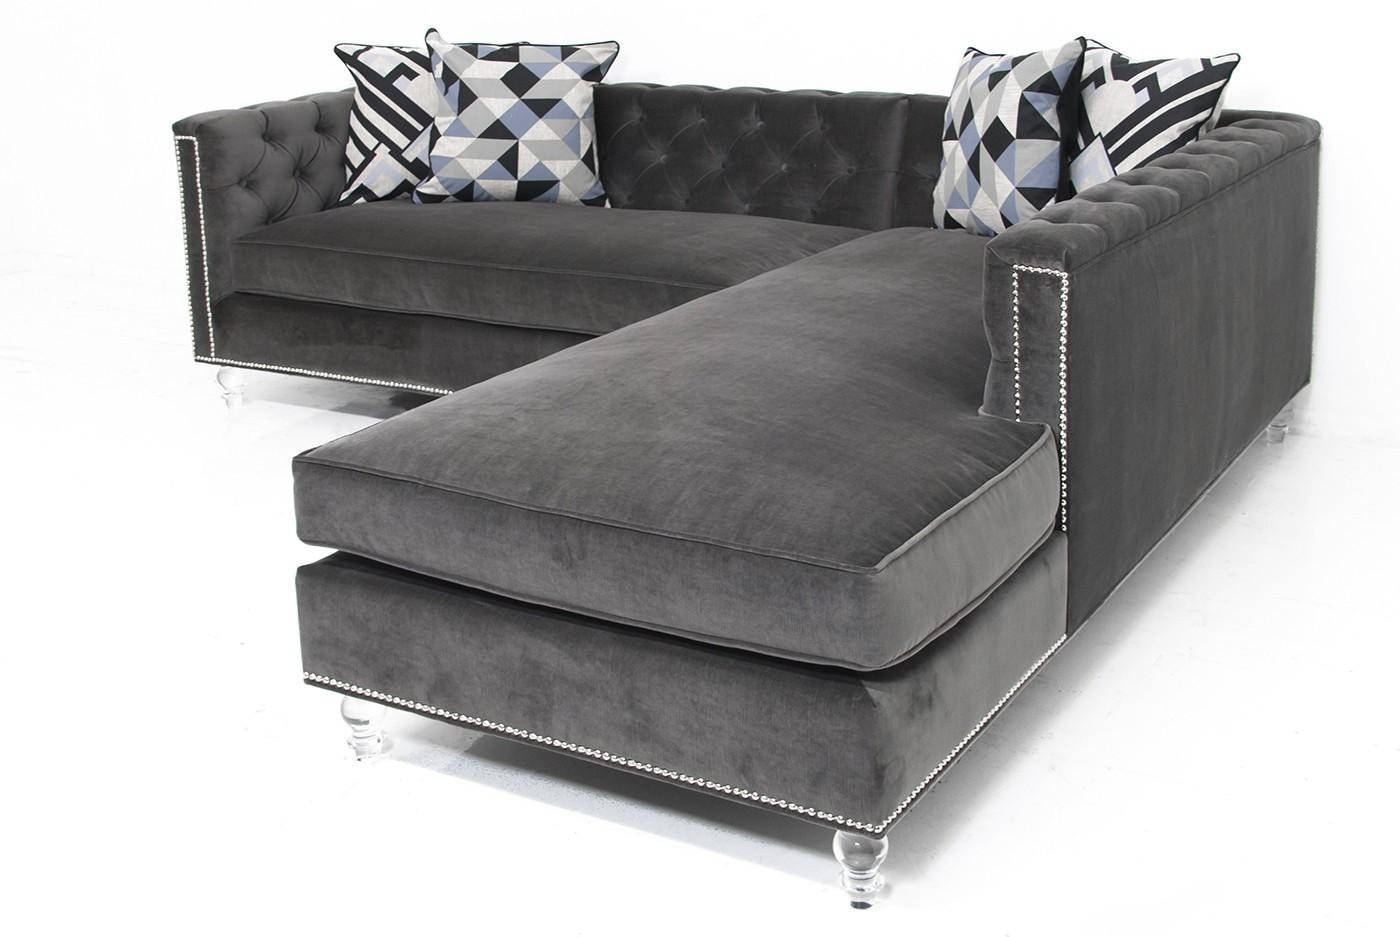 Velvet Tufted Sectional Sofa | Tehranmix Decoration within Tufted Sectional Sofa Chaise